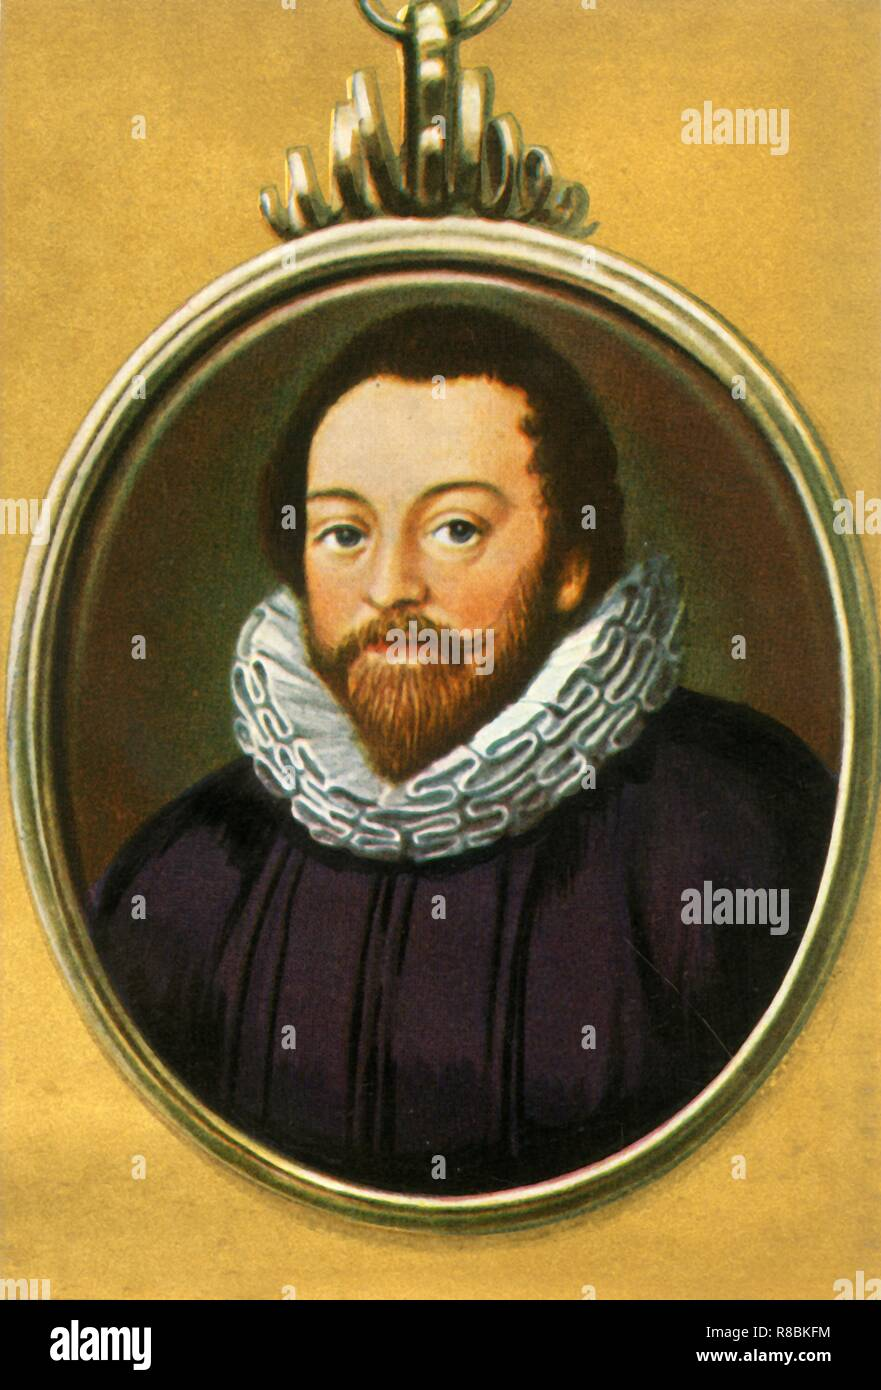 """'Francis Drake', (1933). Portrait of English navigator, privateer and adventurer Francis Drake (1540-1596). Drake was the most renowned seaman of the Elizabethan Age. He circumnavigated the globe (1577-1580), commanded the attack on the Spanish fleet in Cadiz Harbour in 1587 (the 'singeing of the King of Spain's beard') and played an important role in defeating the Spanish Armada the following year. From """"Gestalten Der Weltgeschichte"""", a book of cigarette-card portrait miniatures of figures in world history from the last four hundred years. [Germany, 1933] - Stock Image"""